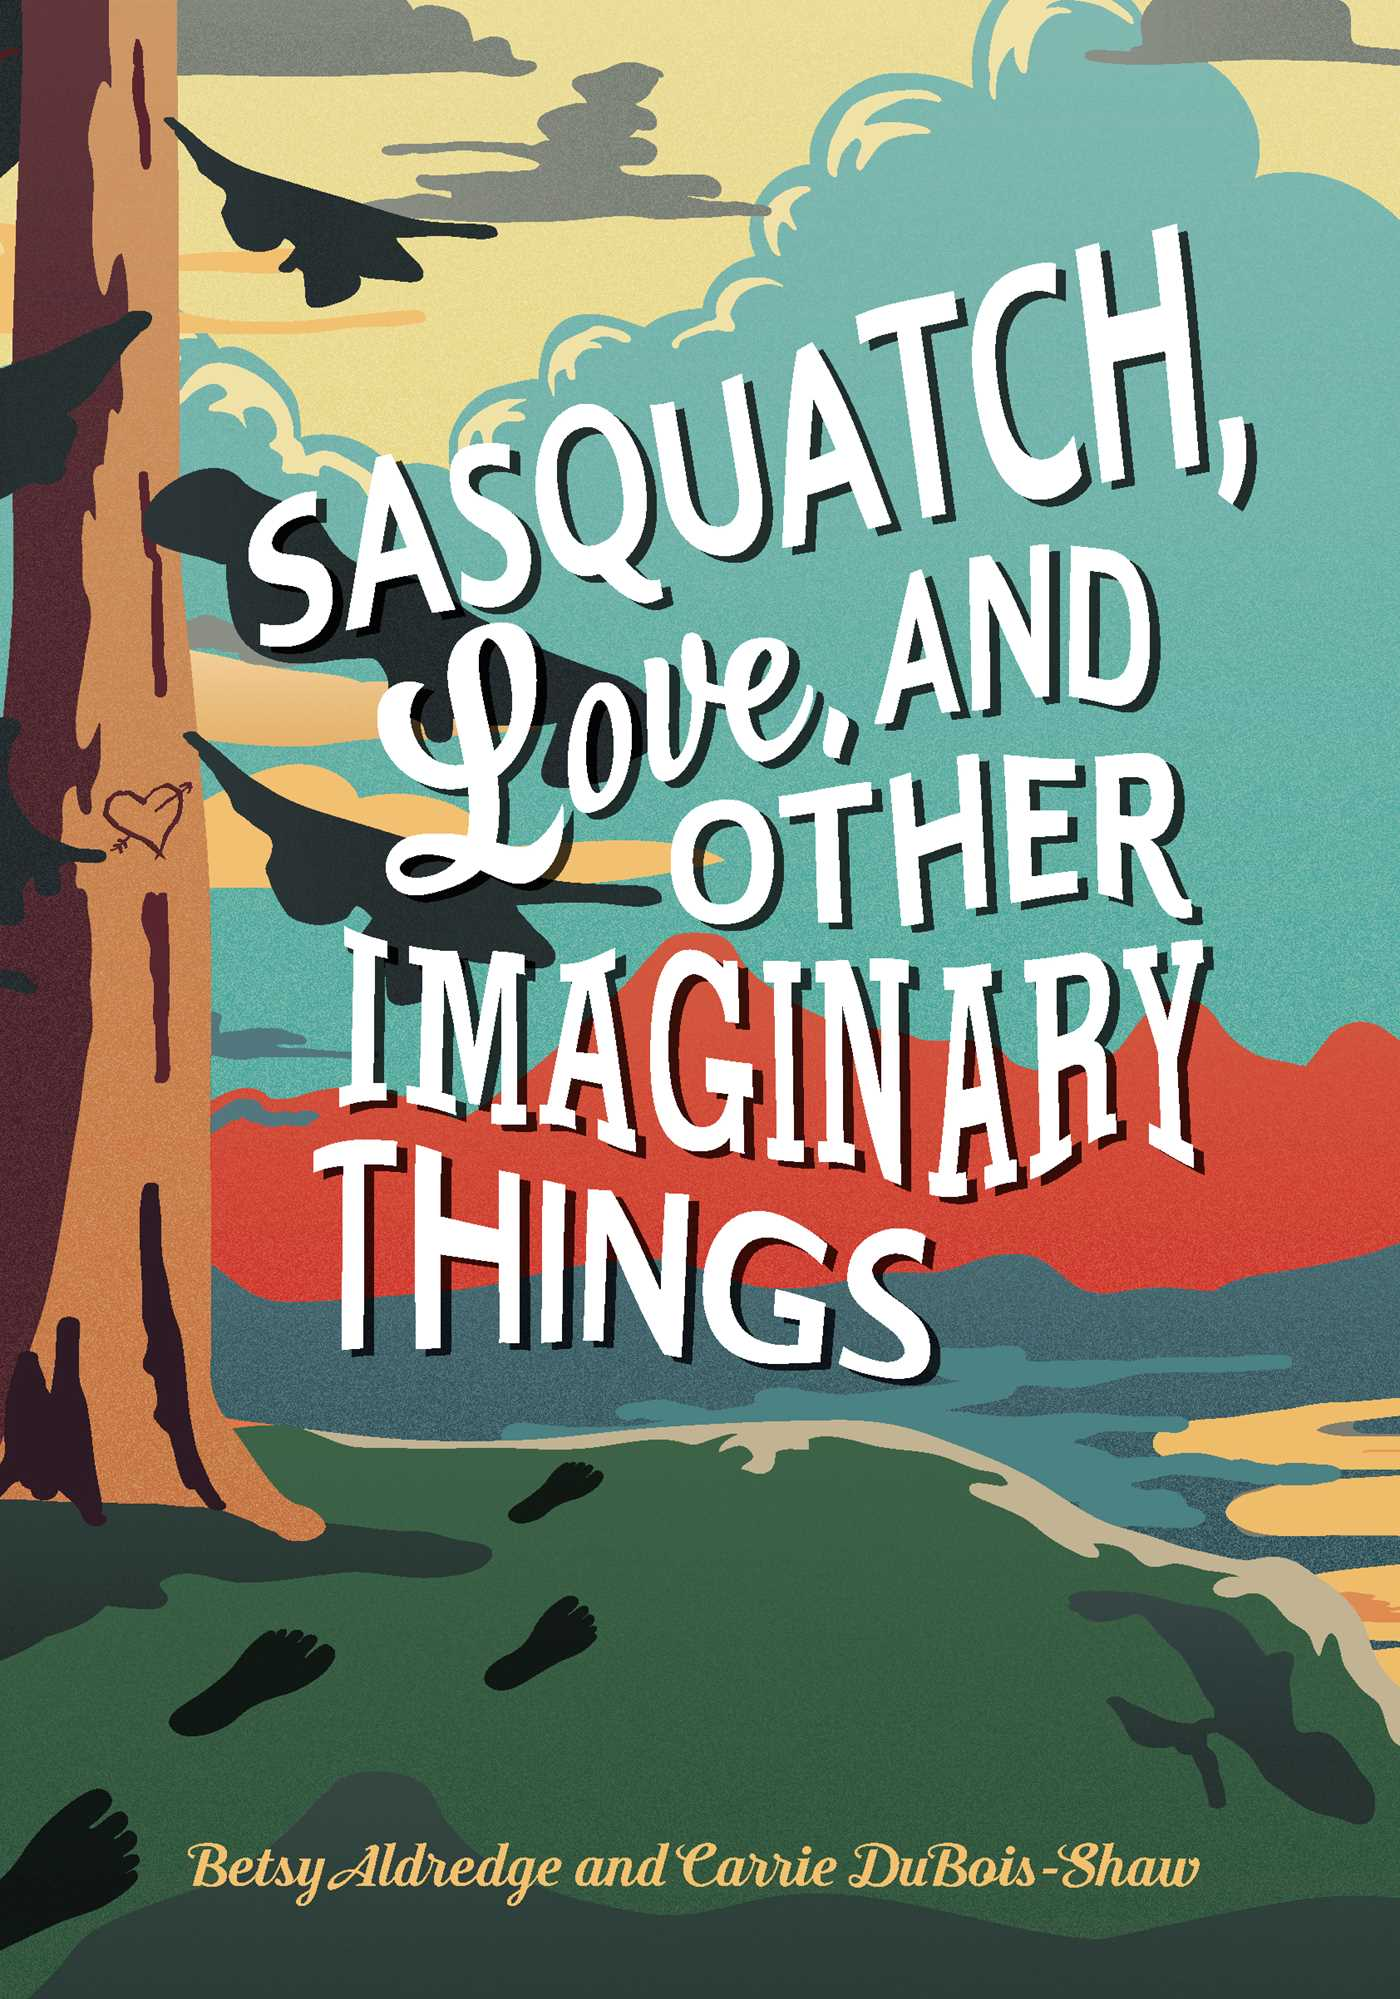 Sasquatch love and other imaginary things 9781507202807 hr